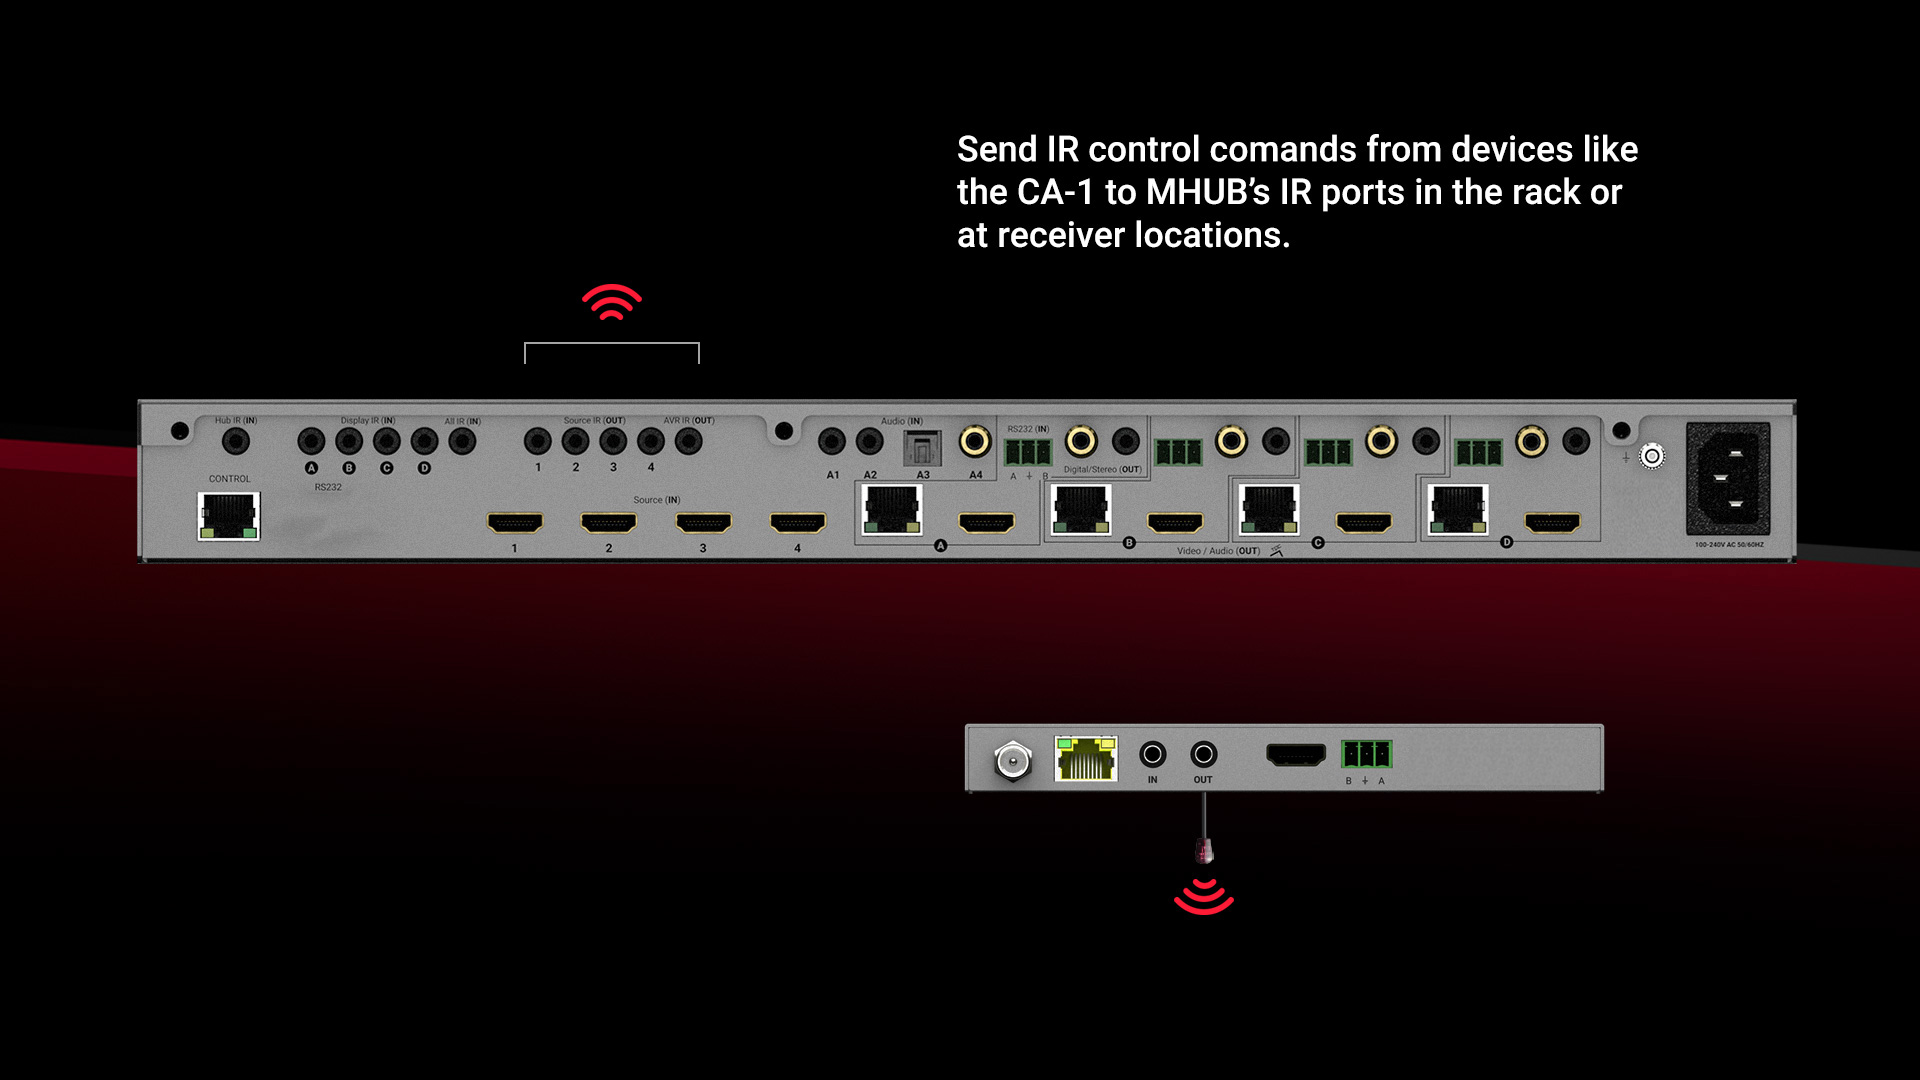 Our Control4 driver allows Control4 the ability to send IR commands directly to MHUB's IR ports